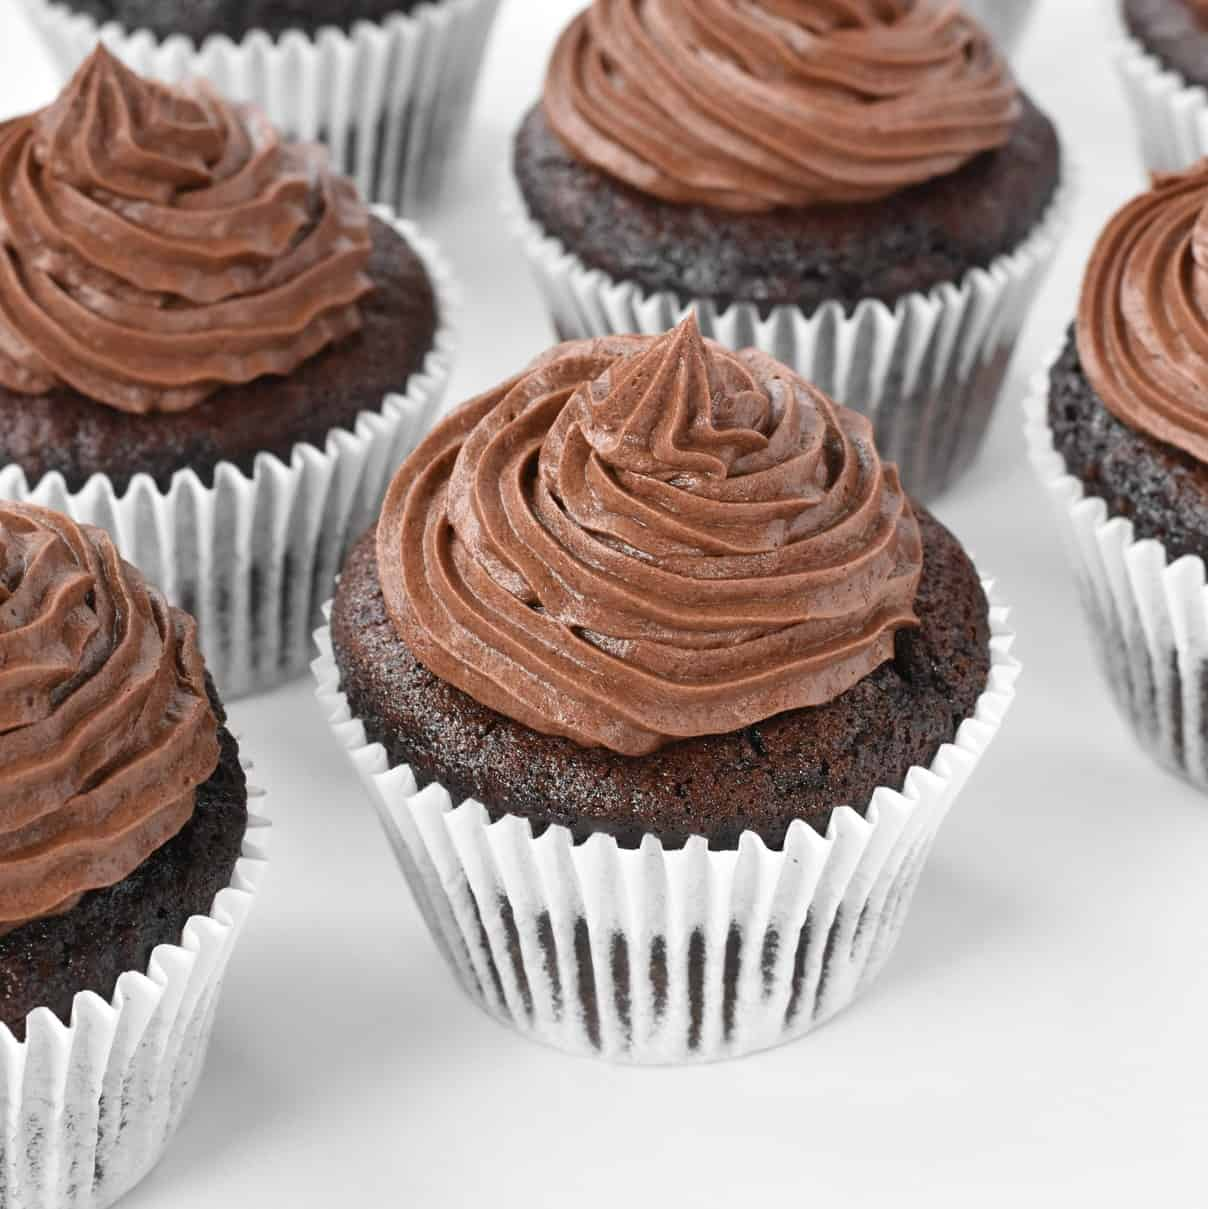 Chocolate cupcakes with buttercream swirls in a row.